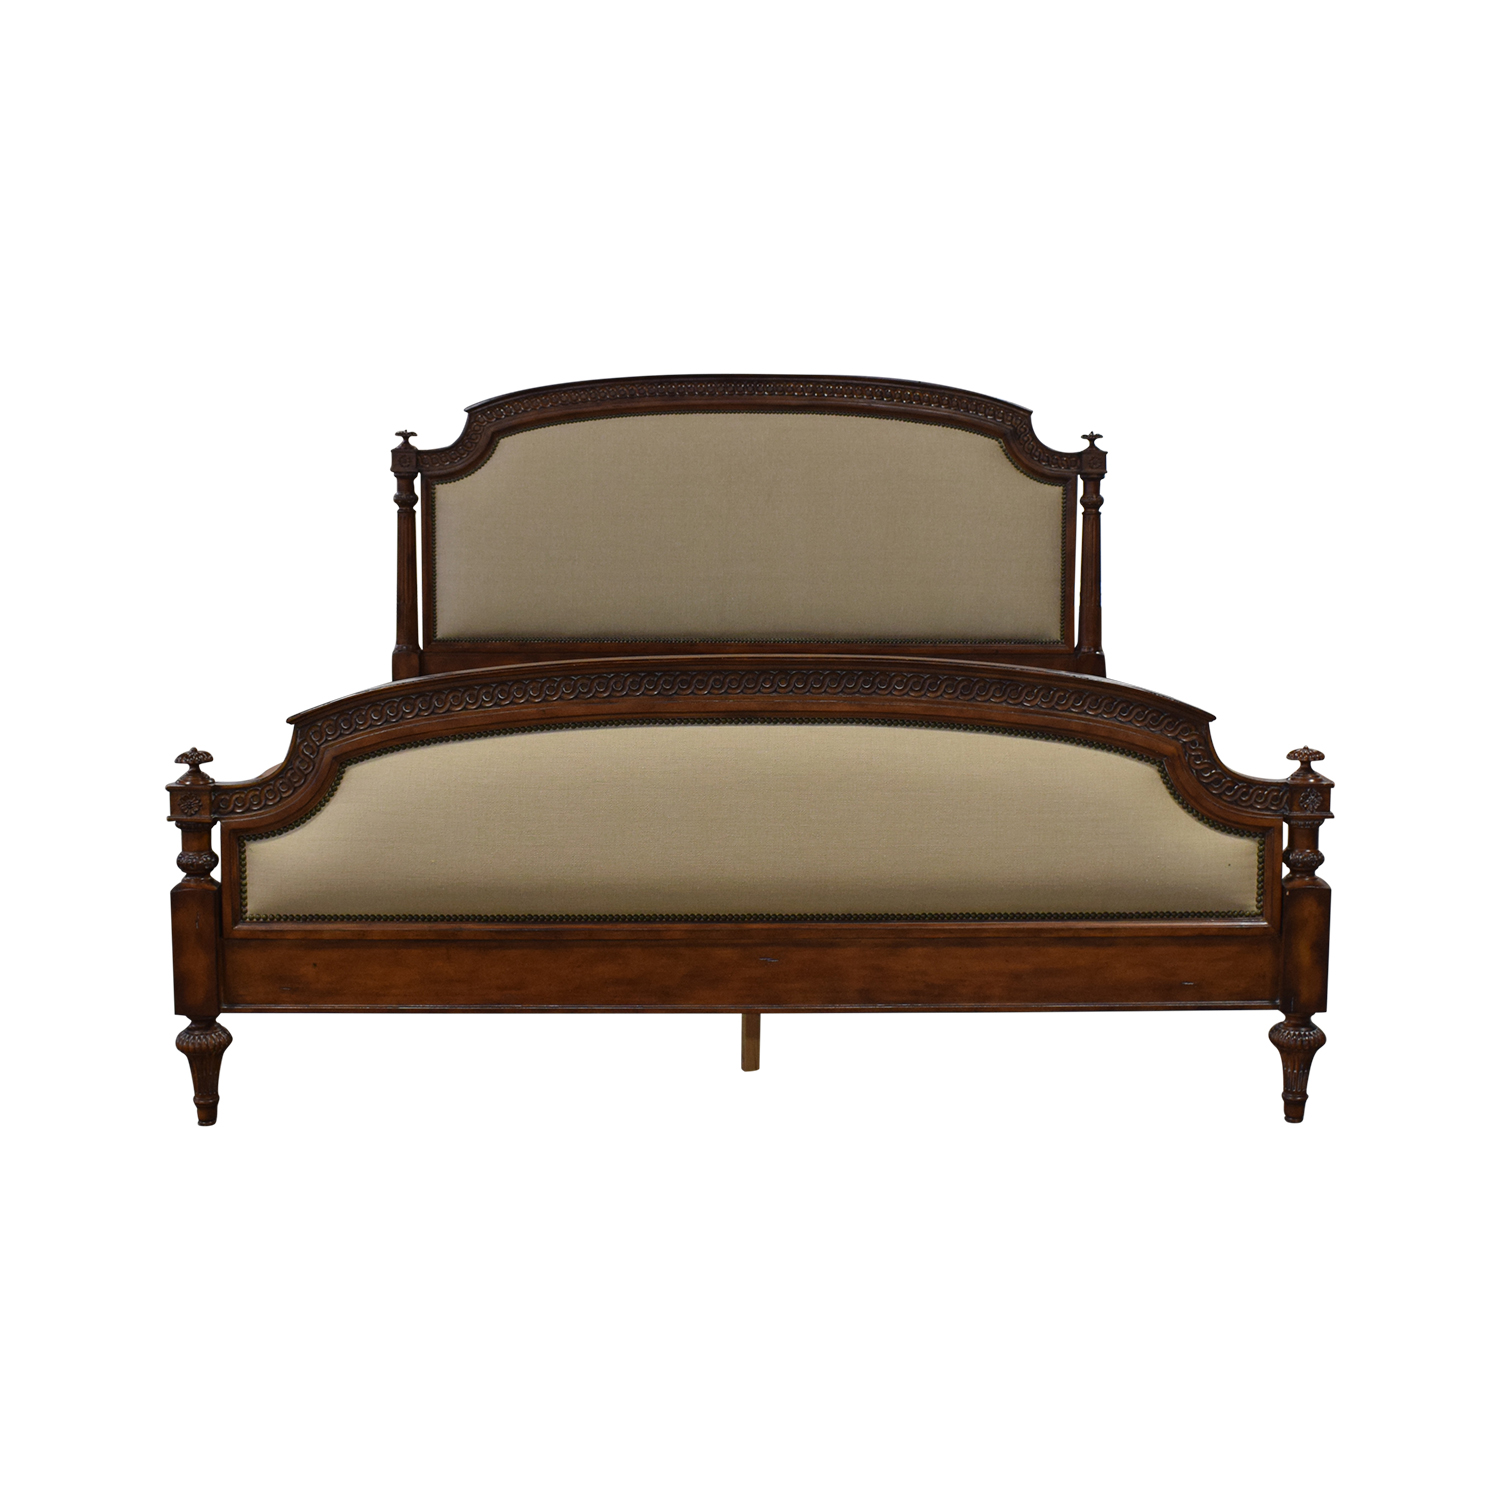 buy Hickory House Rue De Province Carved Wood Upholstered Nailhead King Bed Frame Hickory House